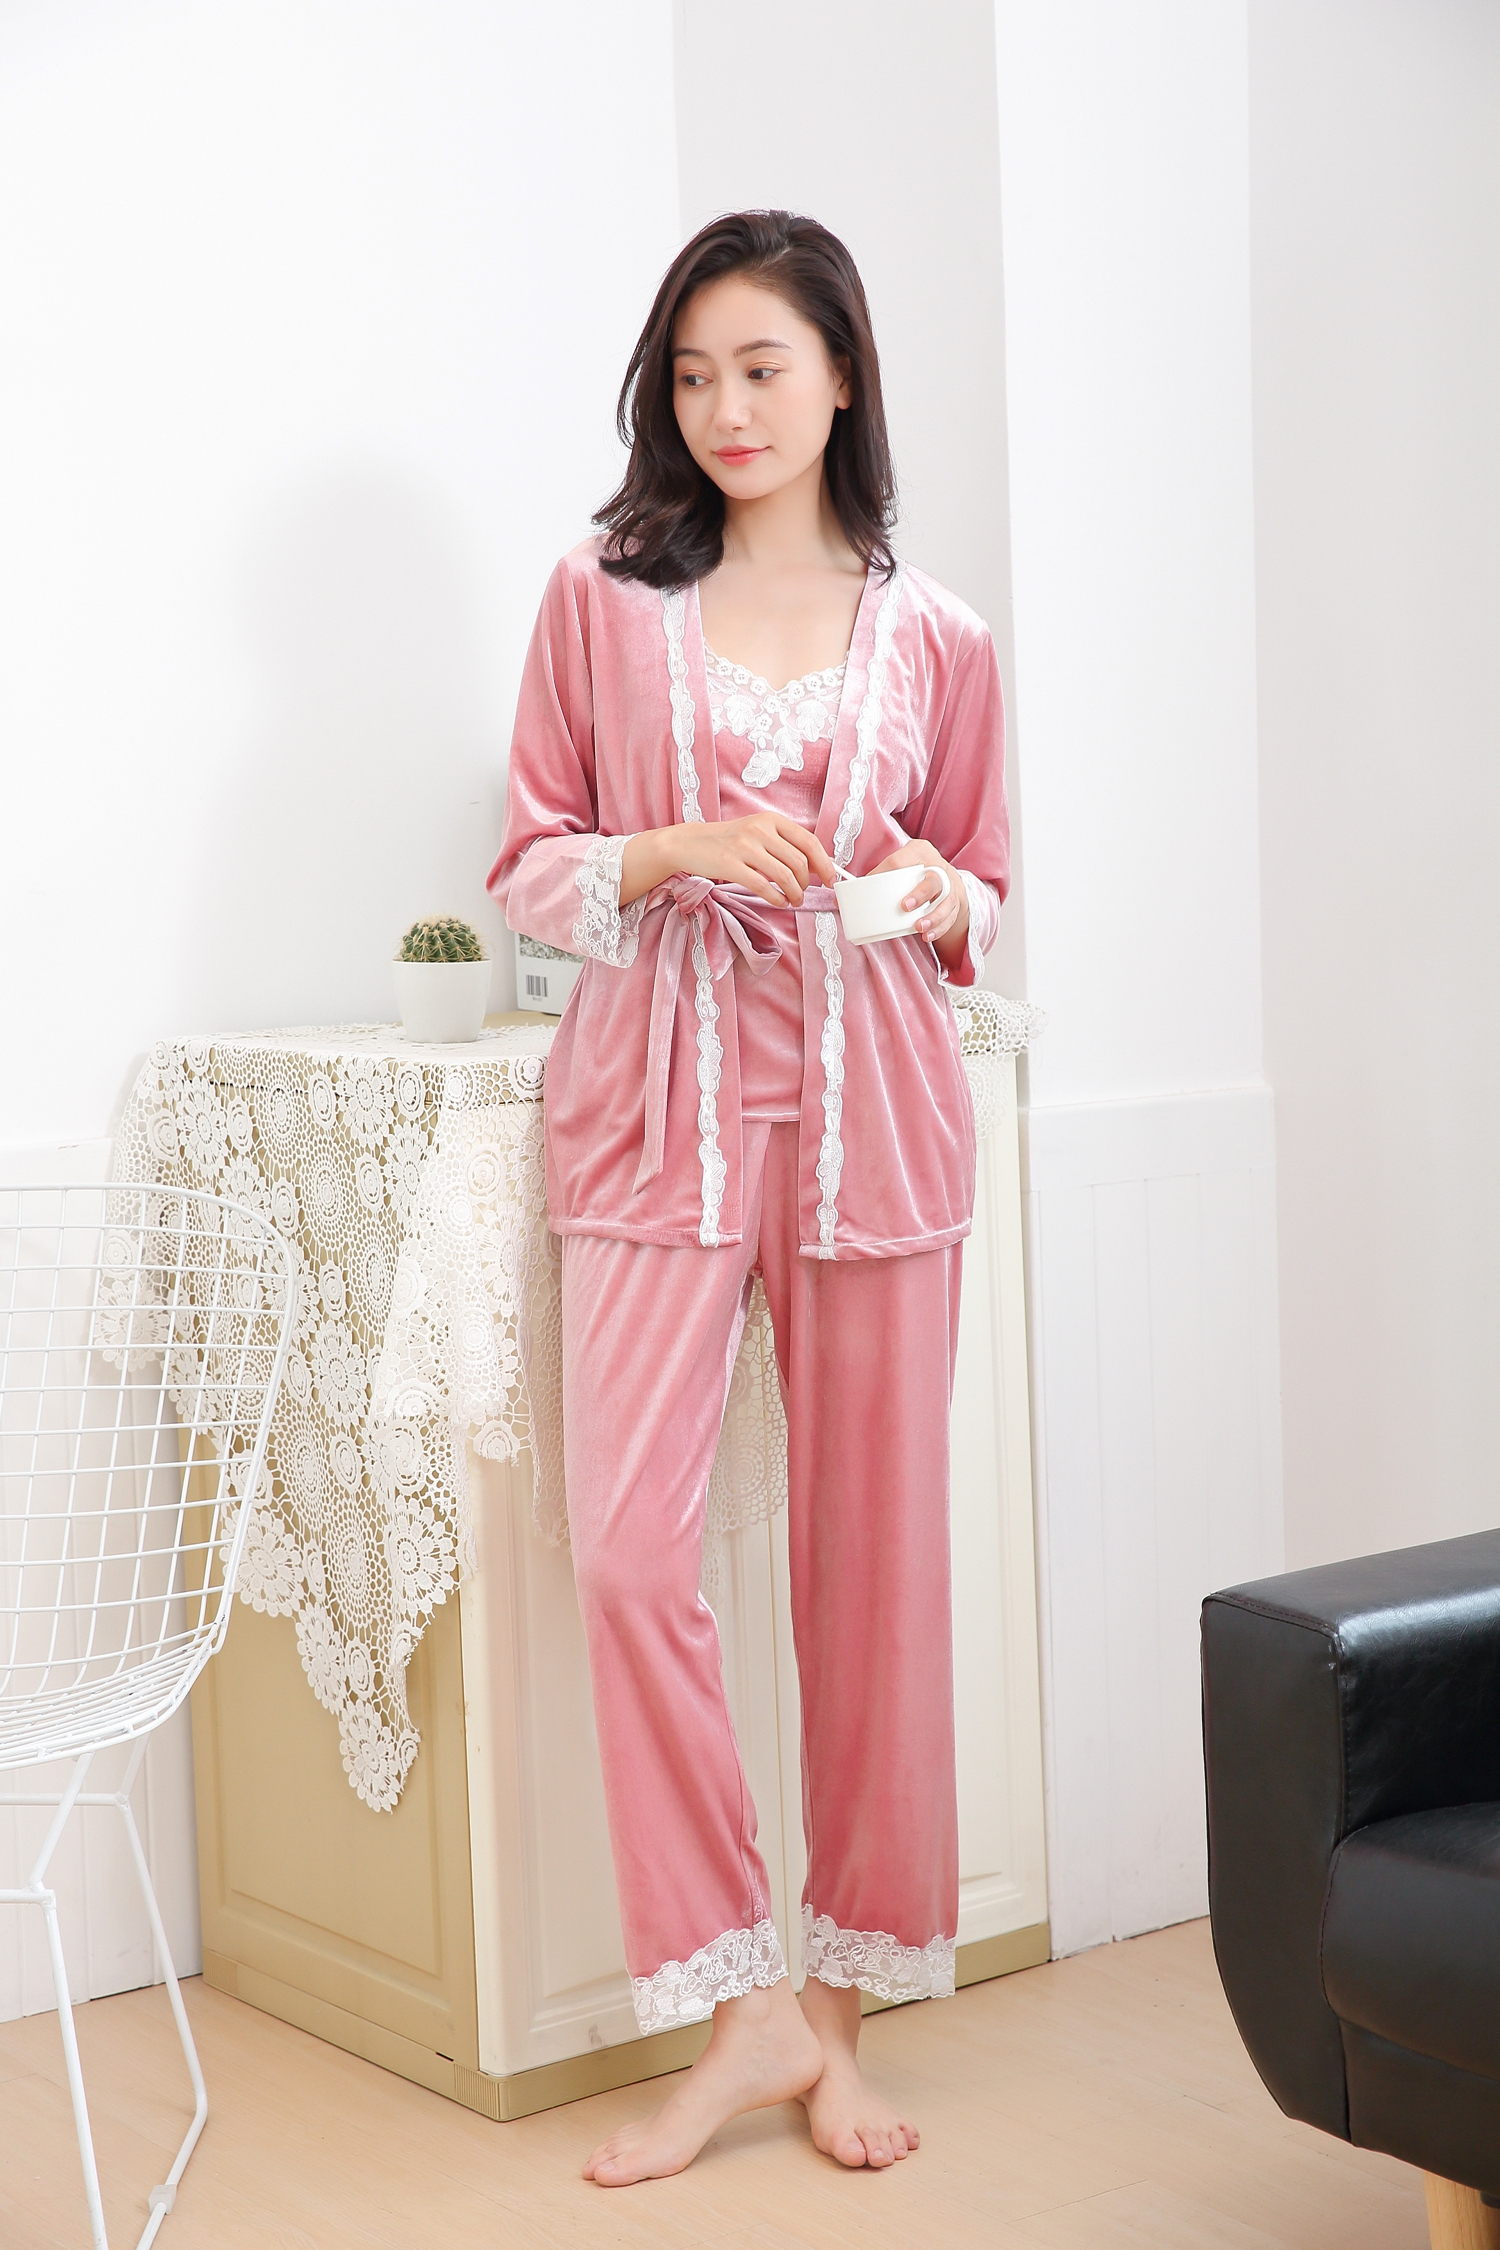 dress home short autumn skin pajamas product comforter comfortable friendly cotton mother m spring andstylish sleeved service and